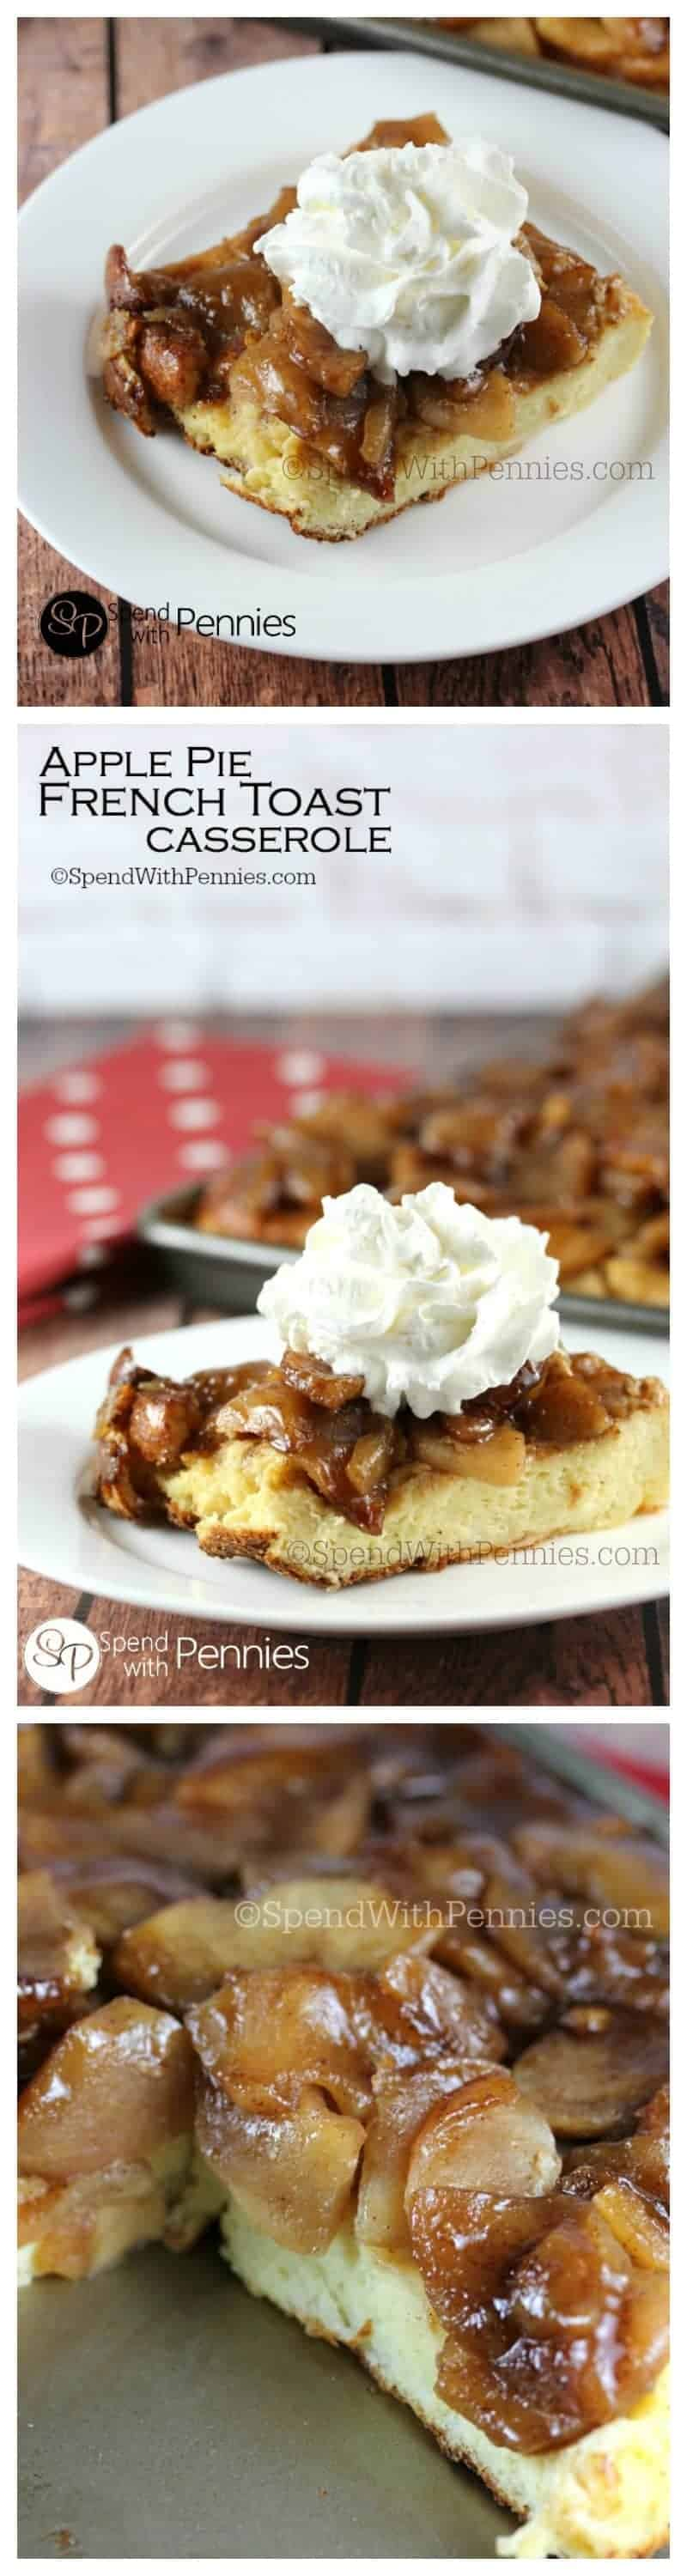 Apple Pie French Toast Casserole Is A Delicious Overnight Breakfast Recipe  If You're